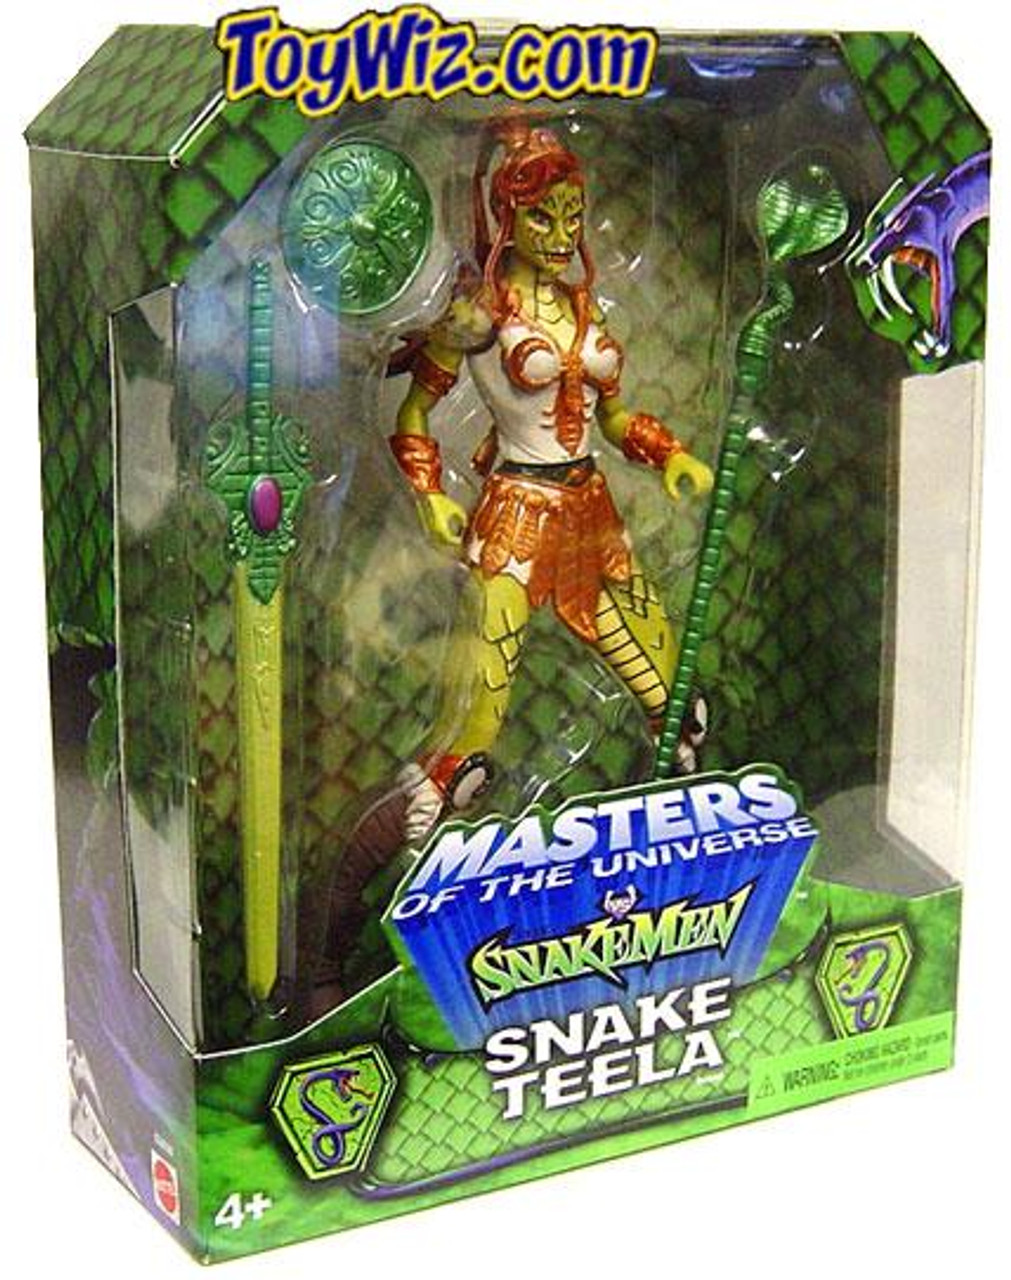 Masters of the Universe Snake Men Snake Teela Exclusive Action Figure